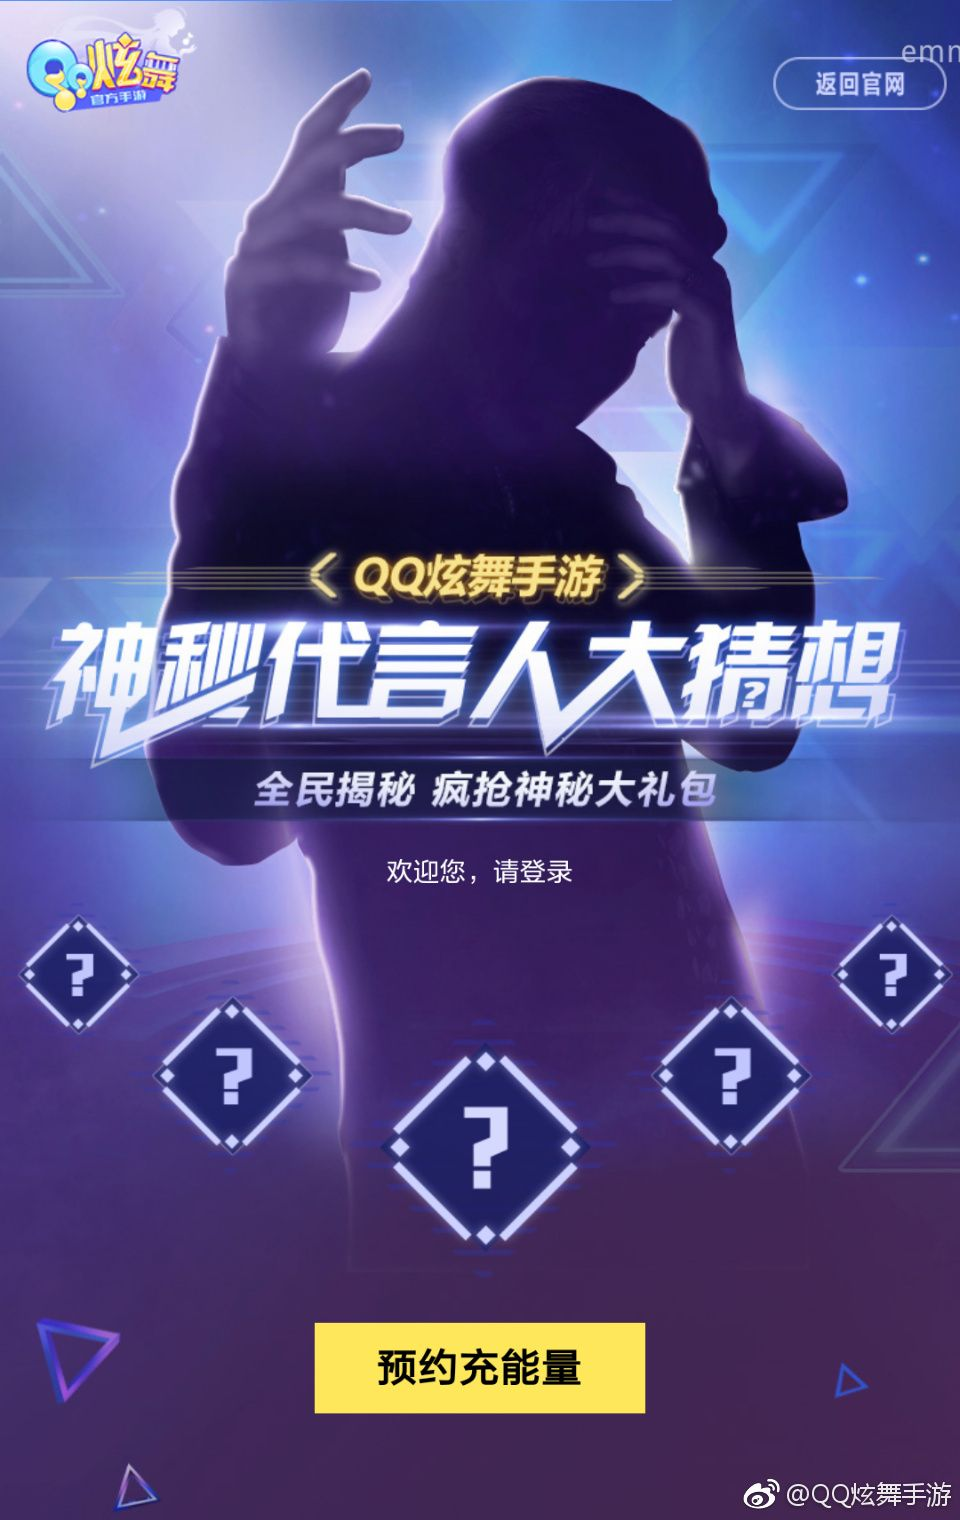 Tencent Qq Dance Mobile Game Cr Qq炫舞手游 Tencent Games 騰訊遊戲 腾讯游戏 Mobile Game Tencent Qq Packaging Design